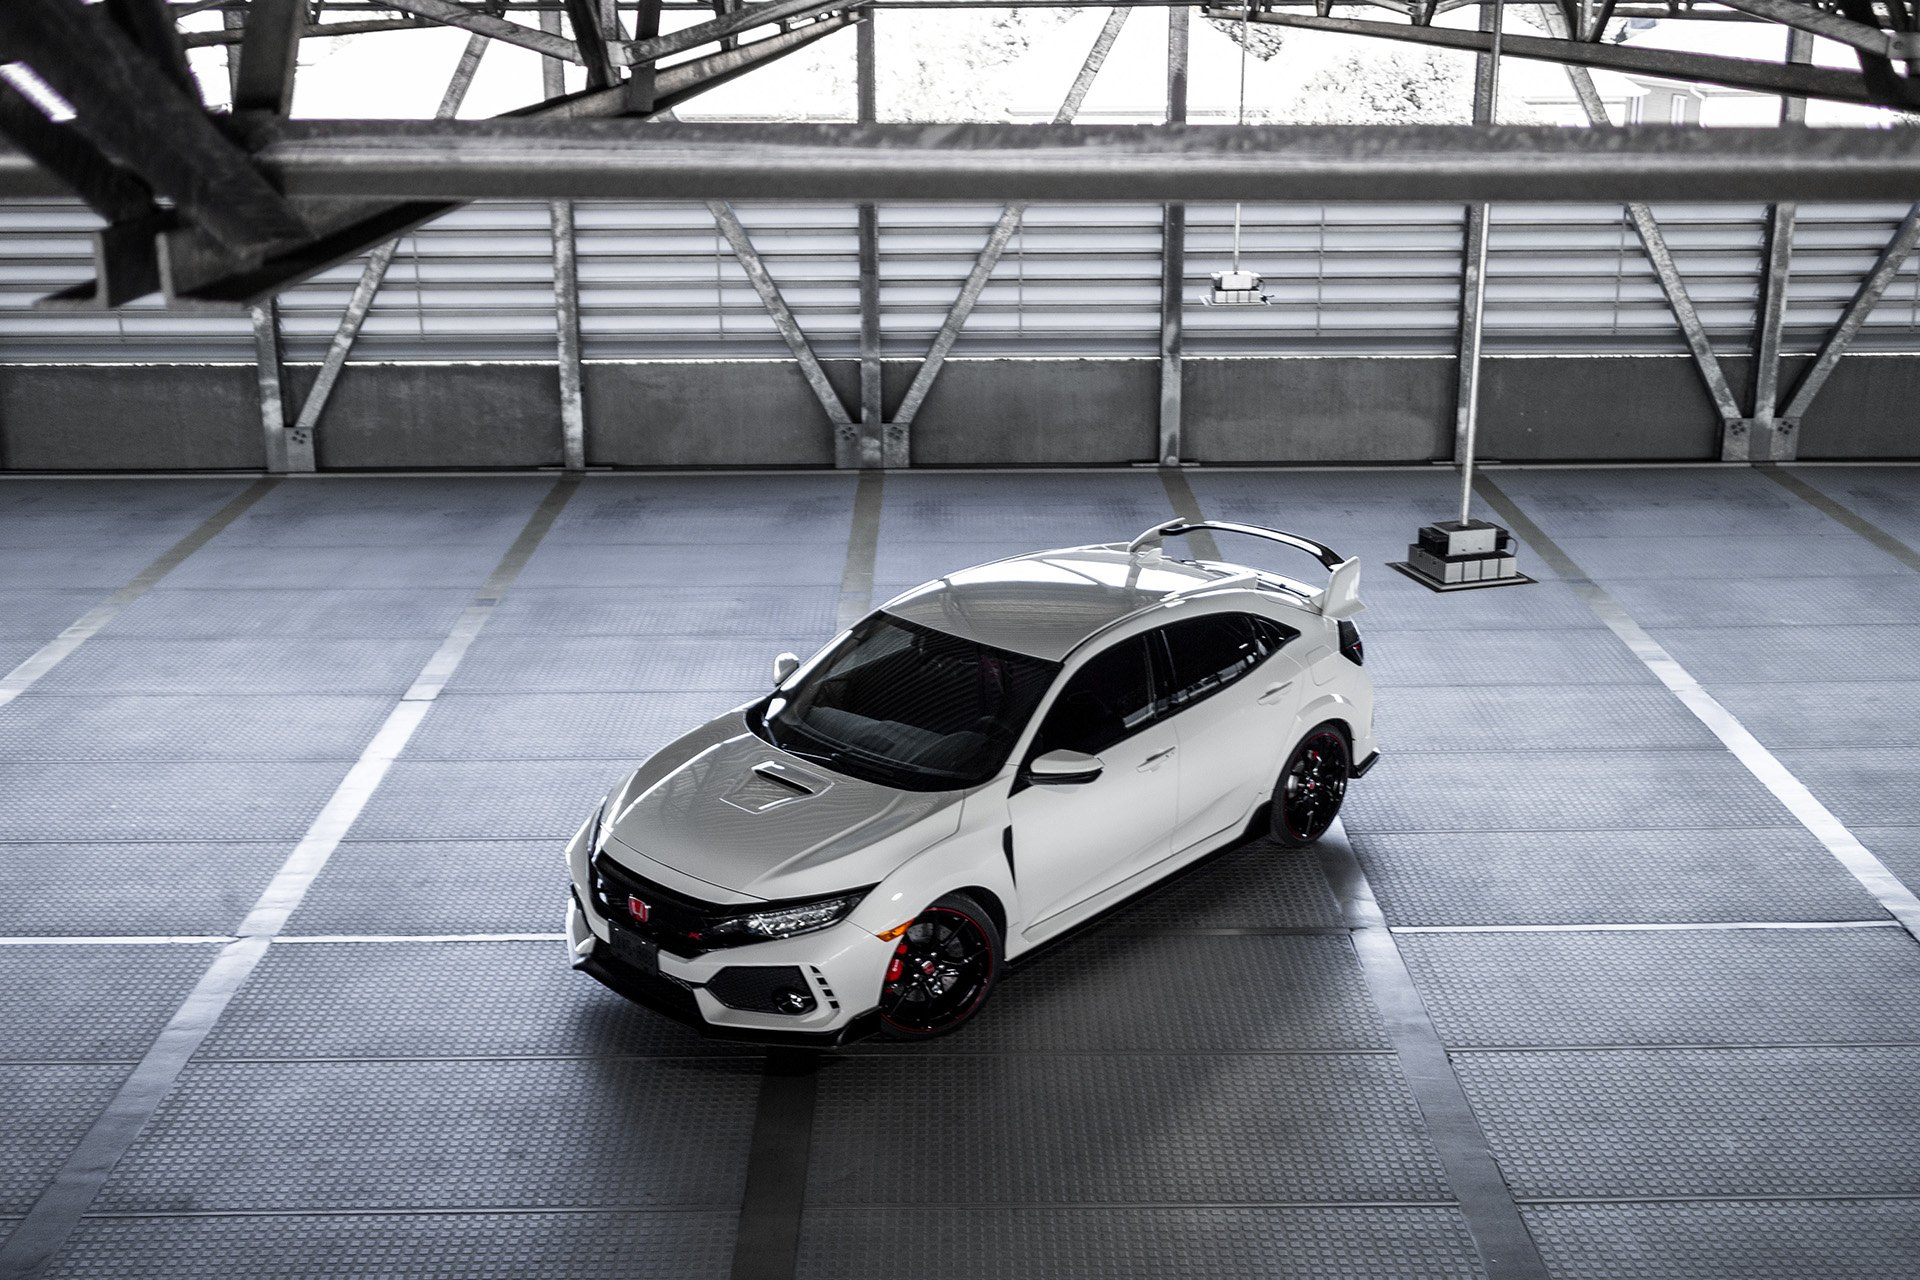 Aftermarket Vented Hood on White Honda Civic Type R - Photo by Vossen